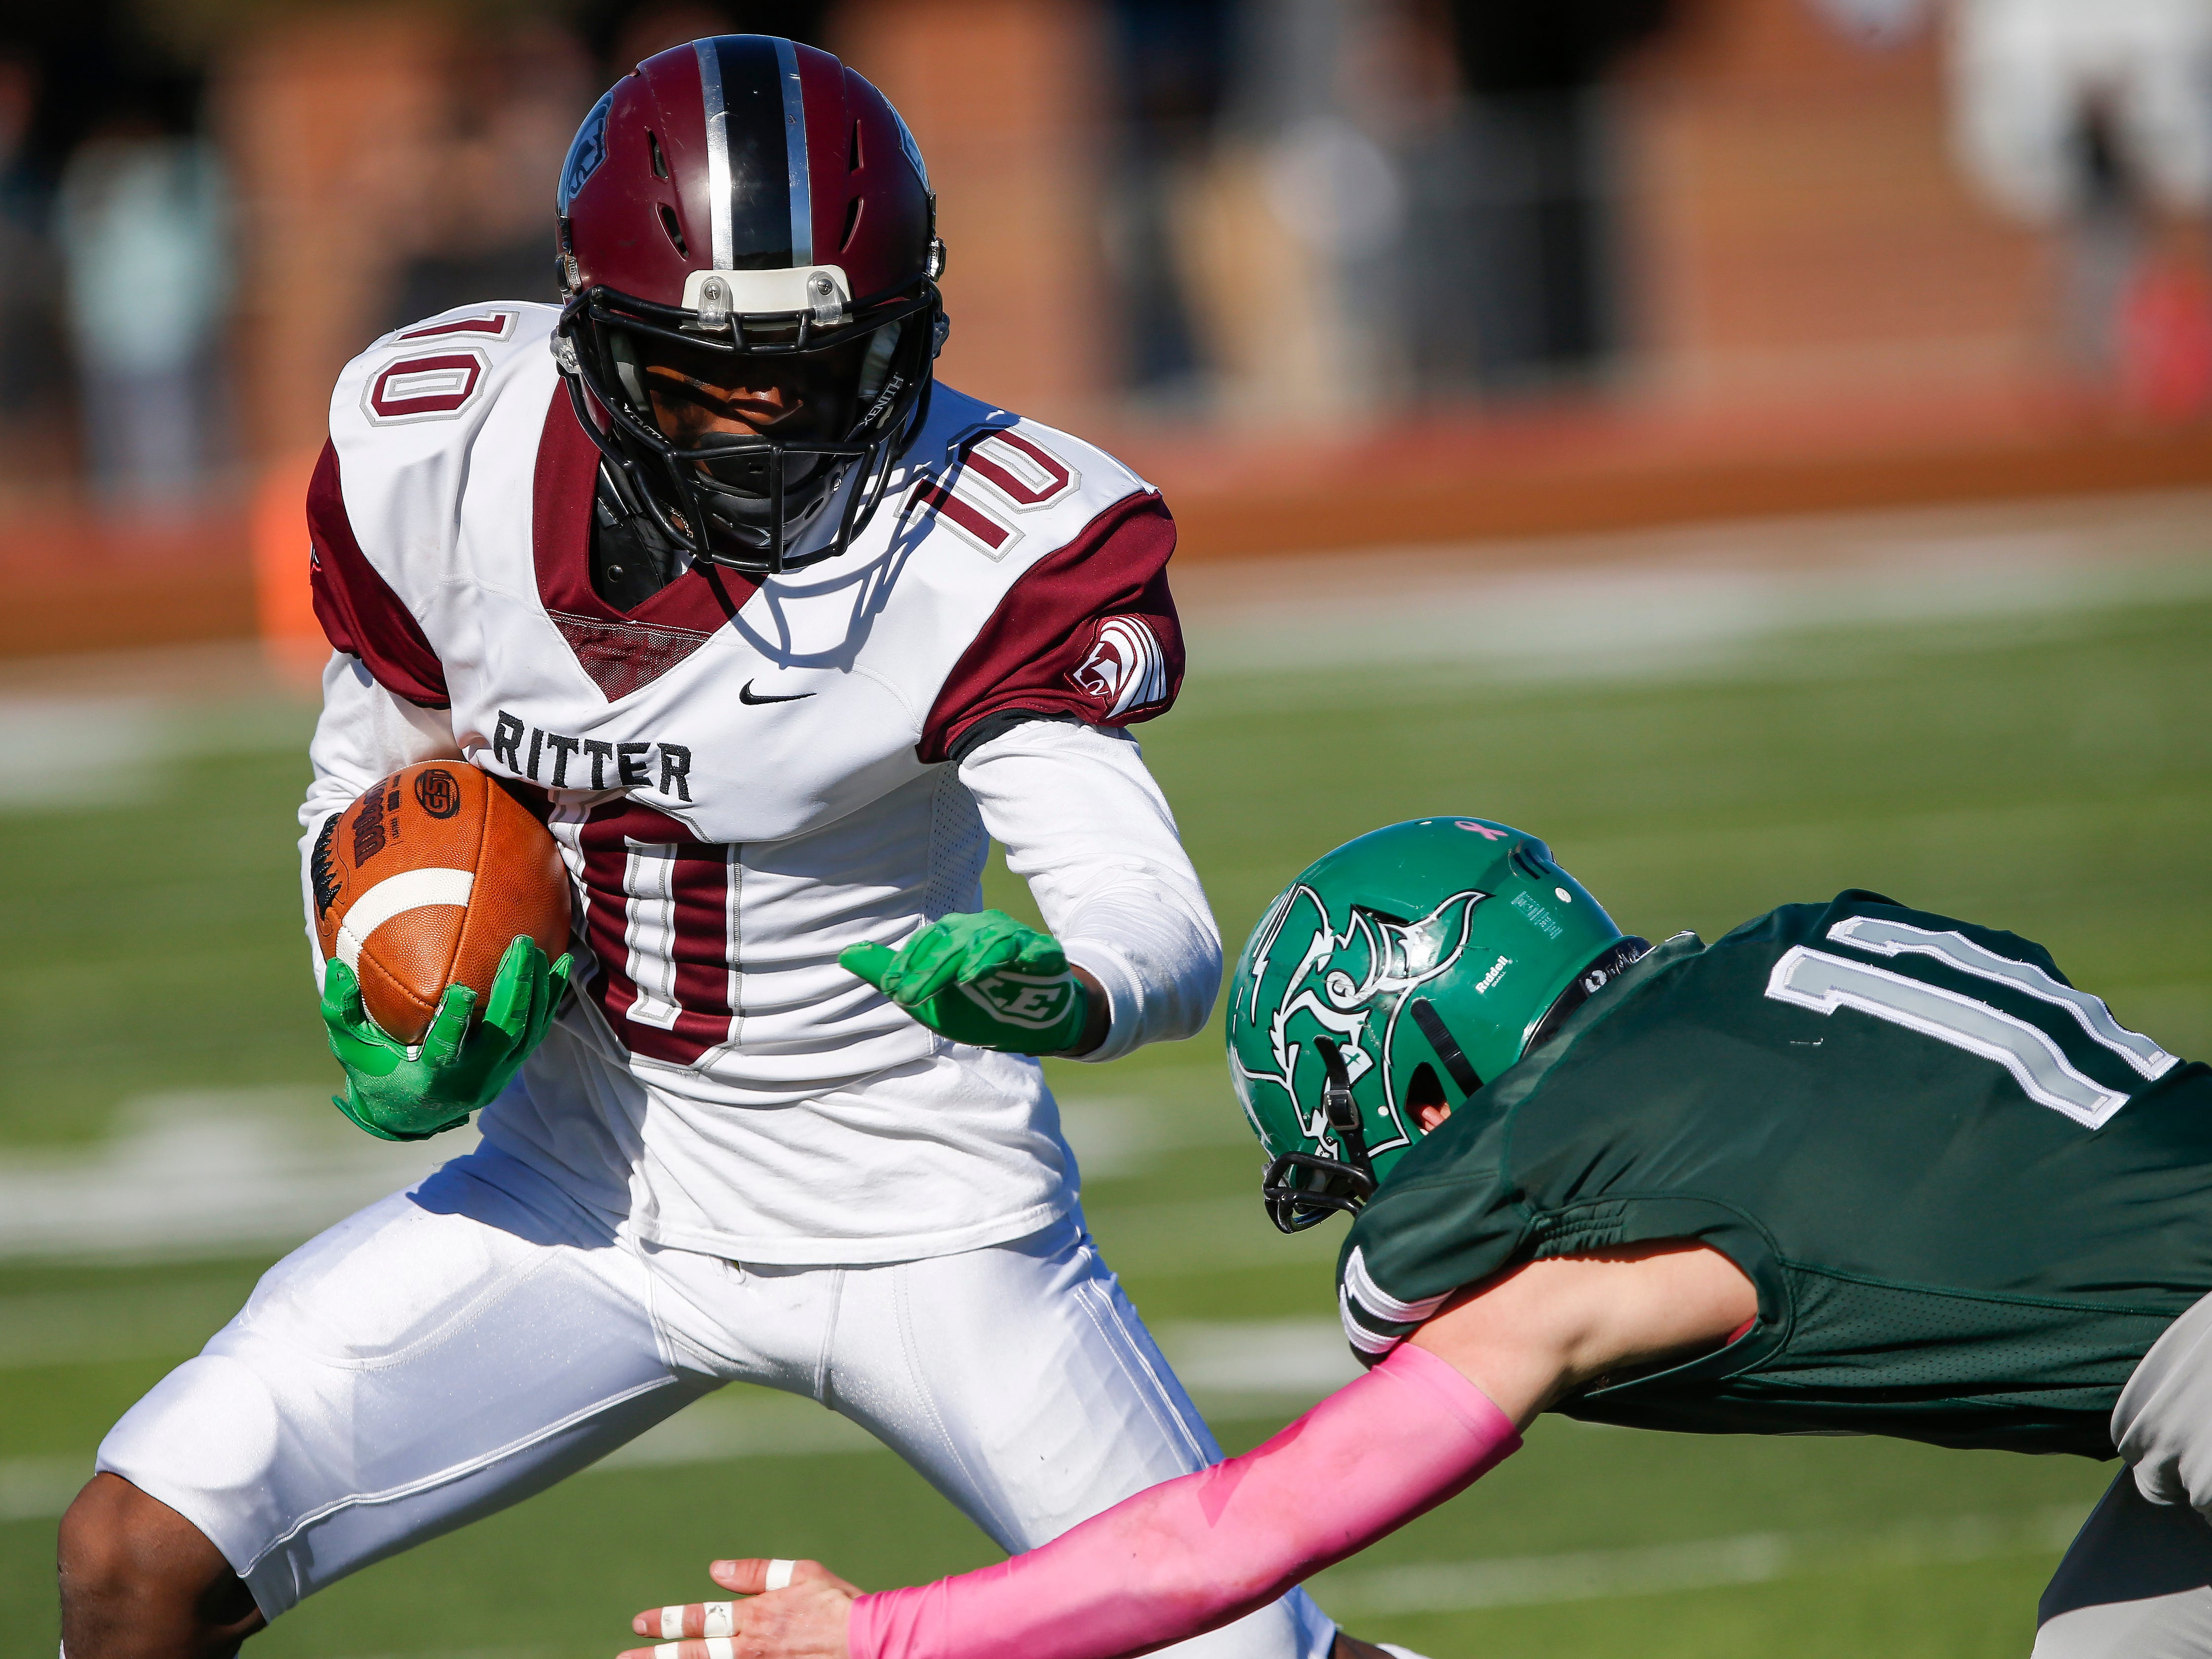 Cardinal Ritter beat Mount Vernon 49-6 at Mount Vernon High School on Saturday, Nov. 24, 2018 to advance to the Class 3 State Championship game.